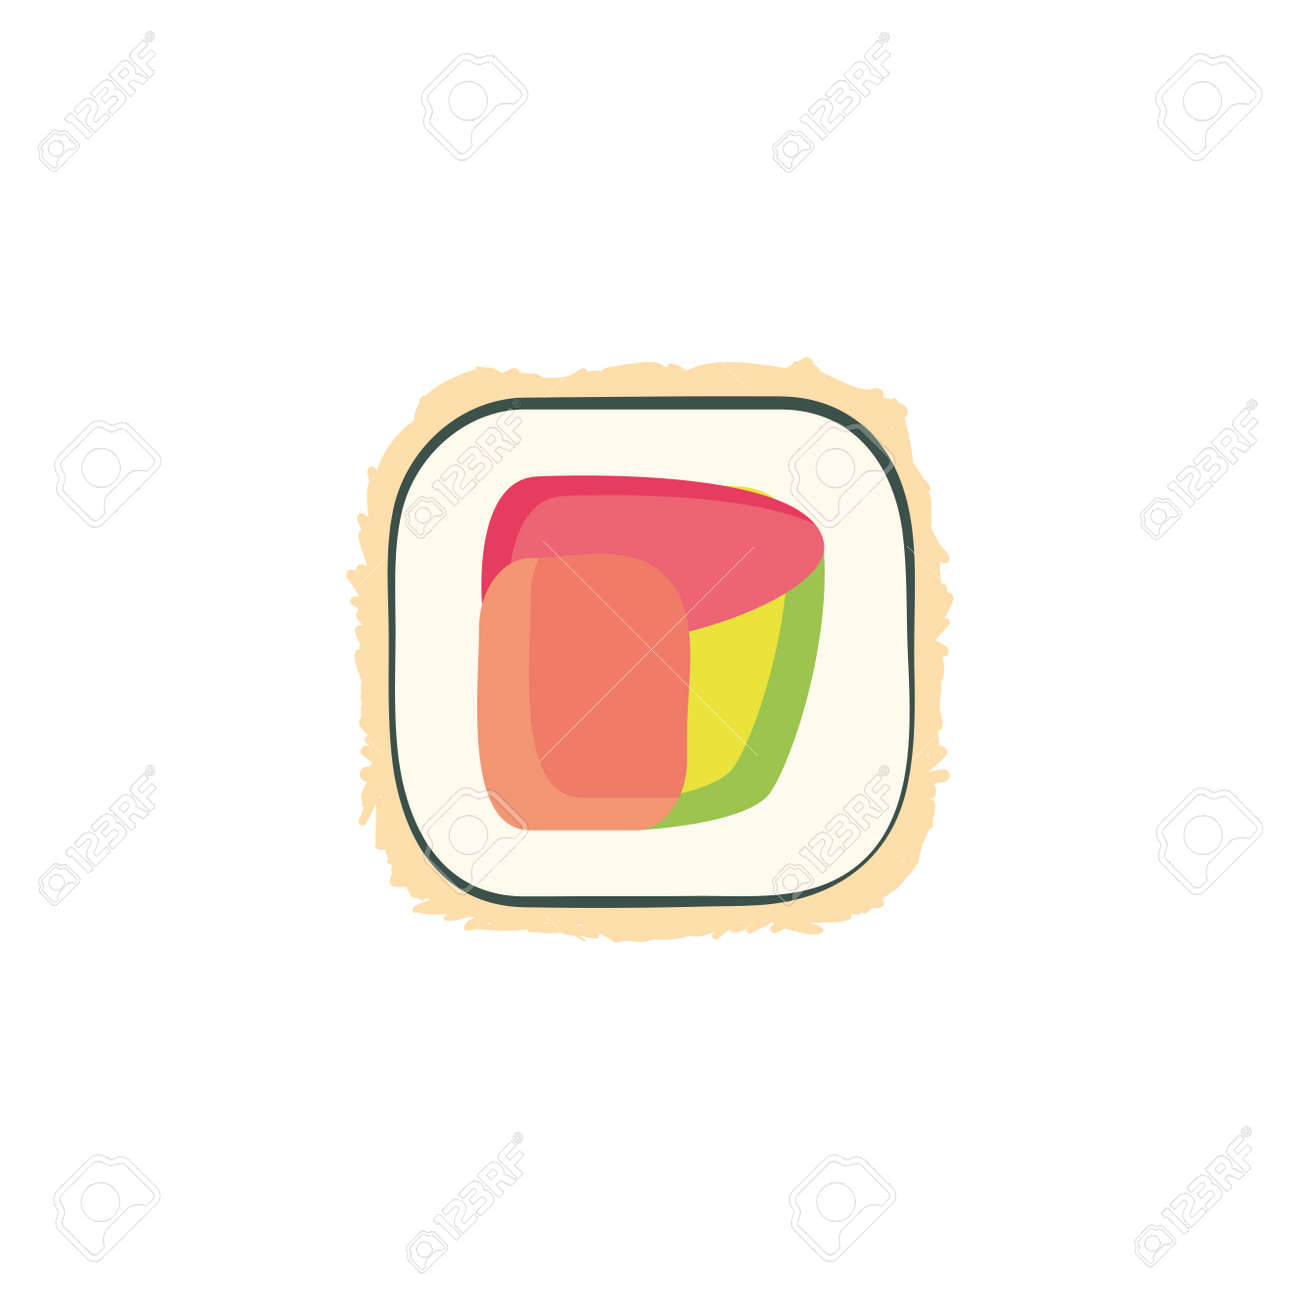 sushi icon design, Eat food restaurant menu dinner lunch cooking and meal theme Vector illustration - 148227719